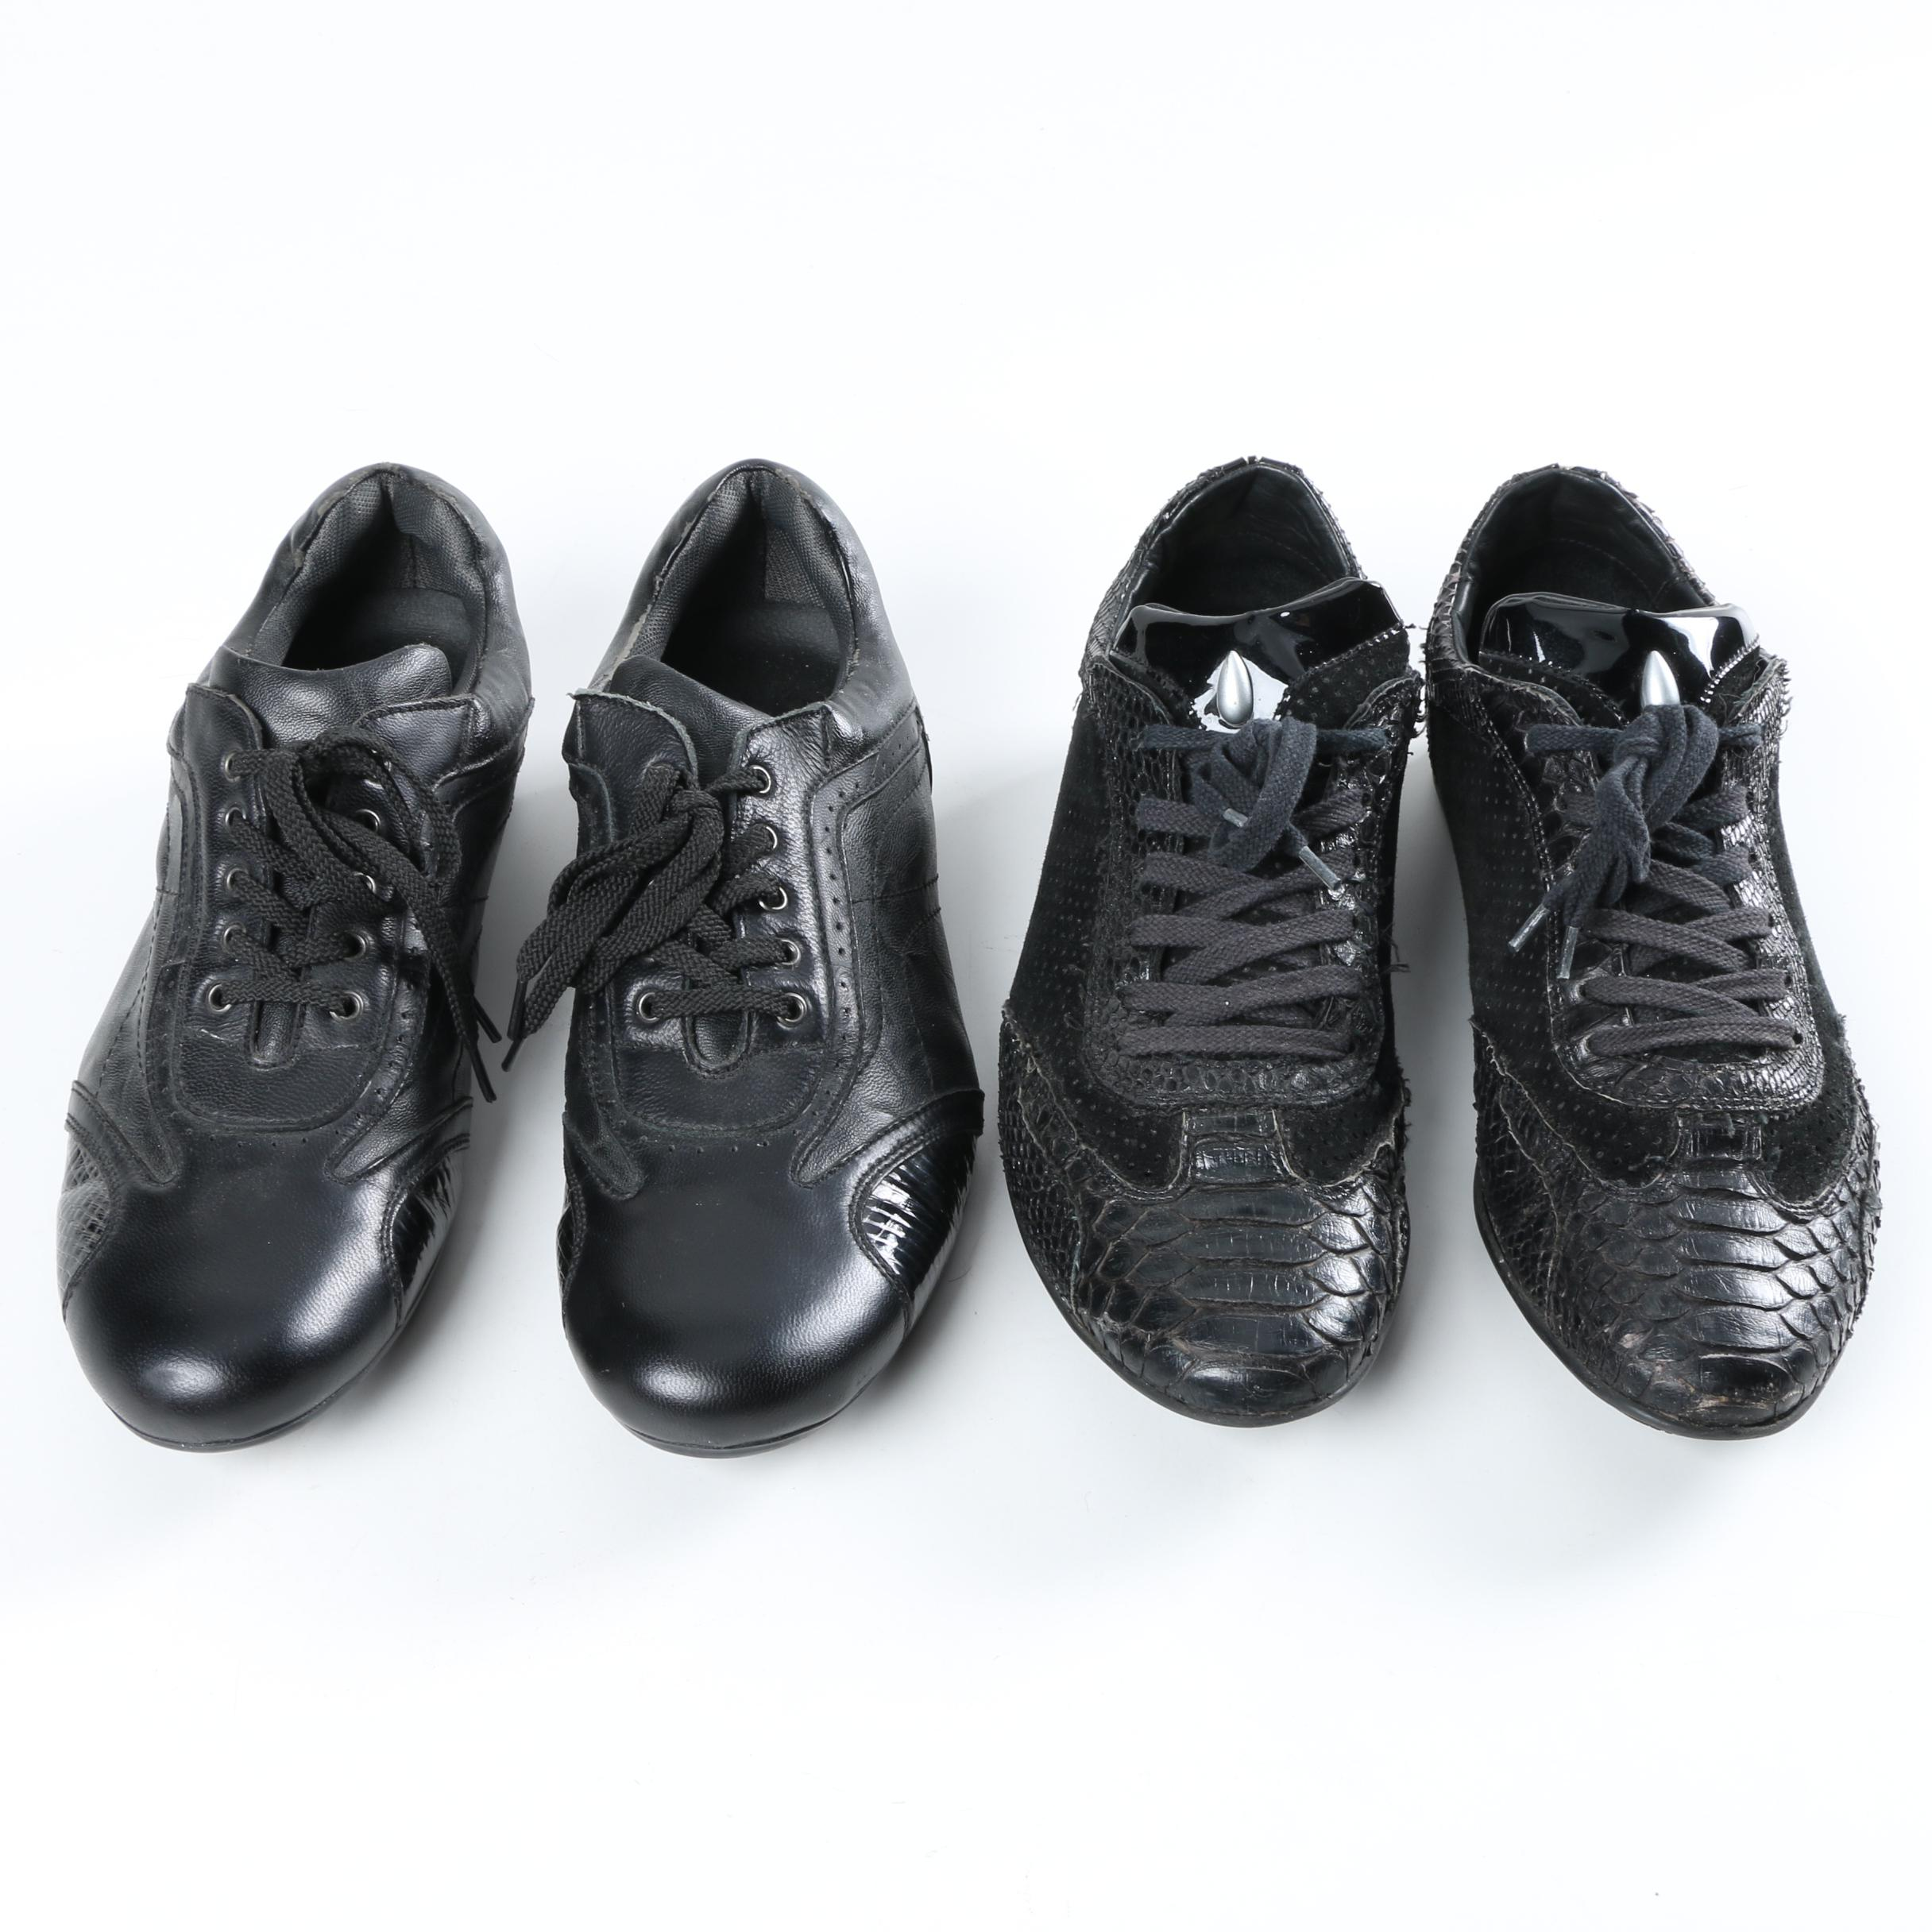 ROBERTO BOTTICELLI LIMITED Fashion Sneakers Mens Leather